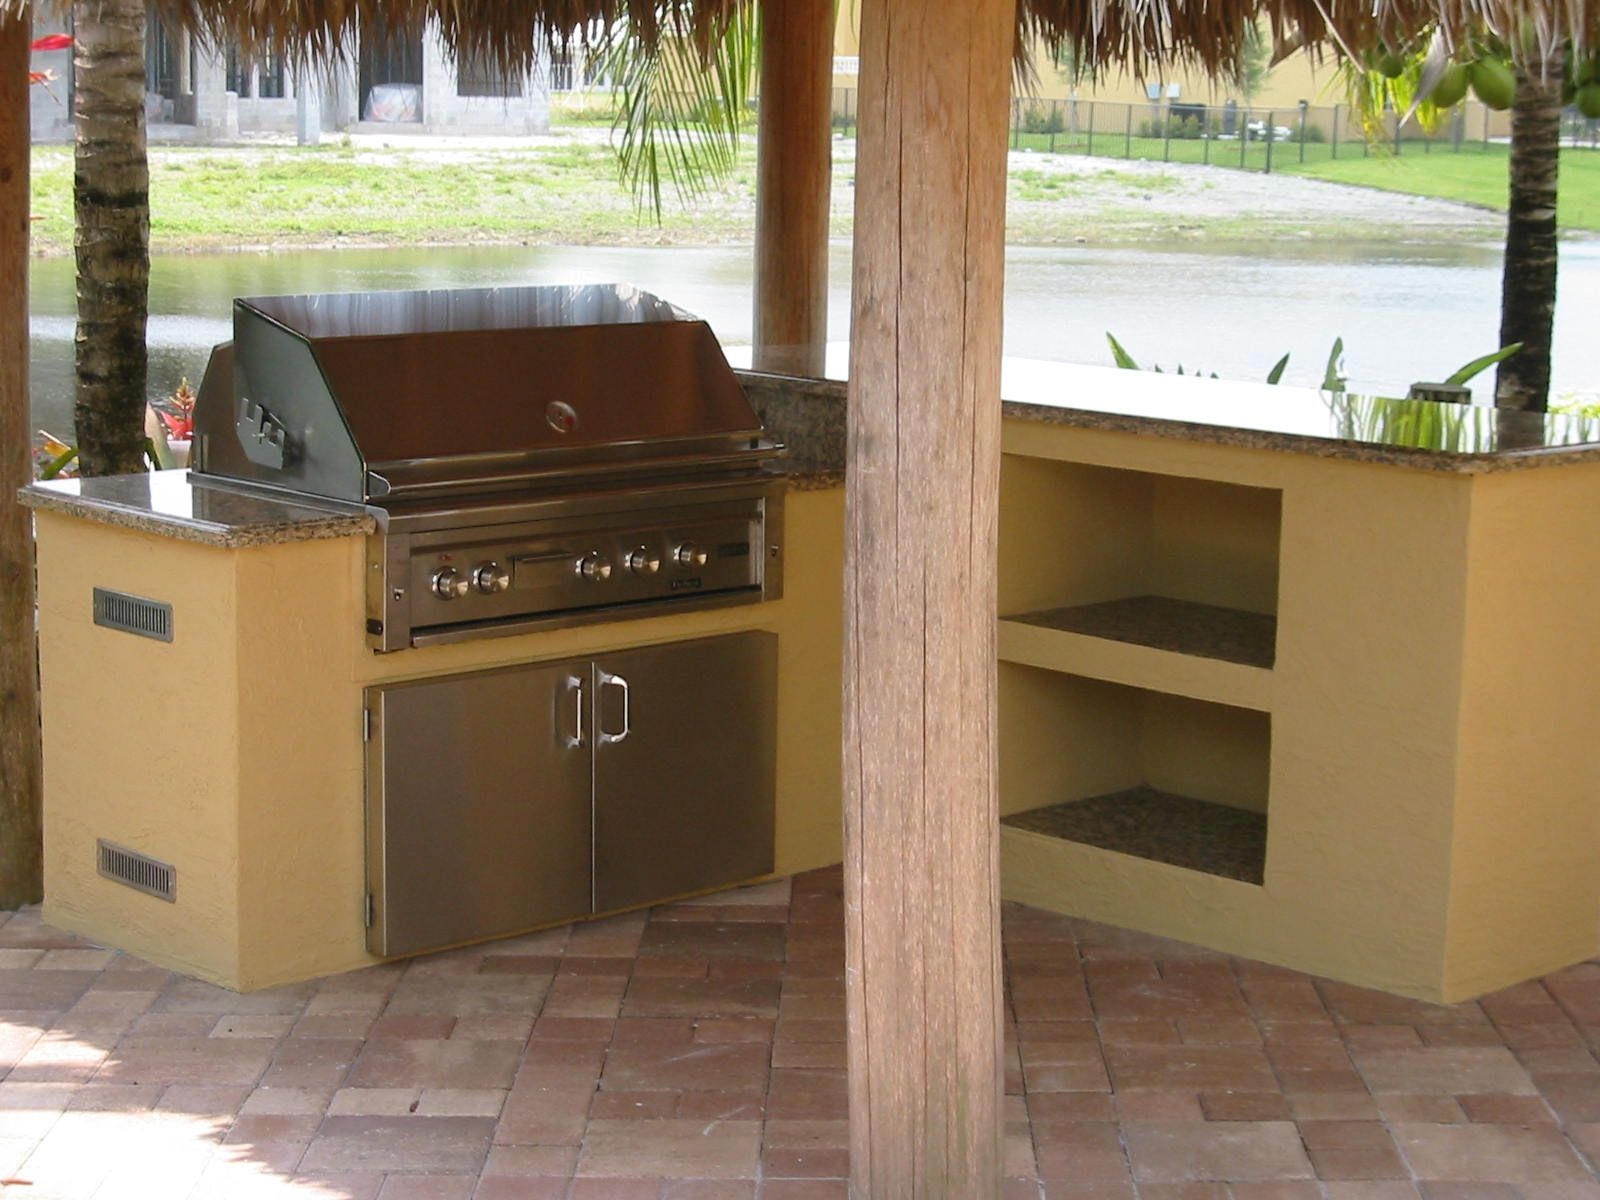 Backyard Barbecue Ideas Lynx Built In Bbq Grill In